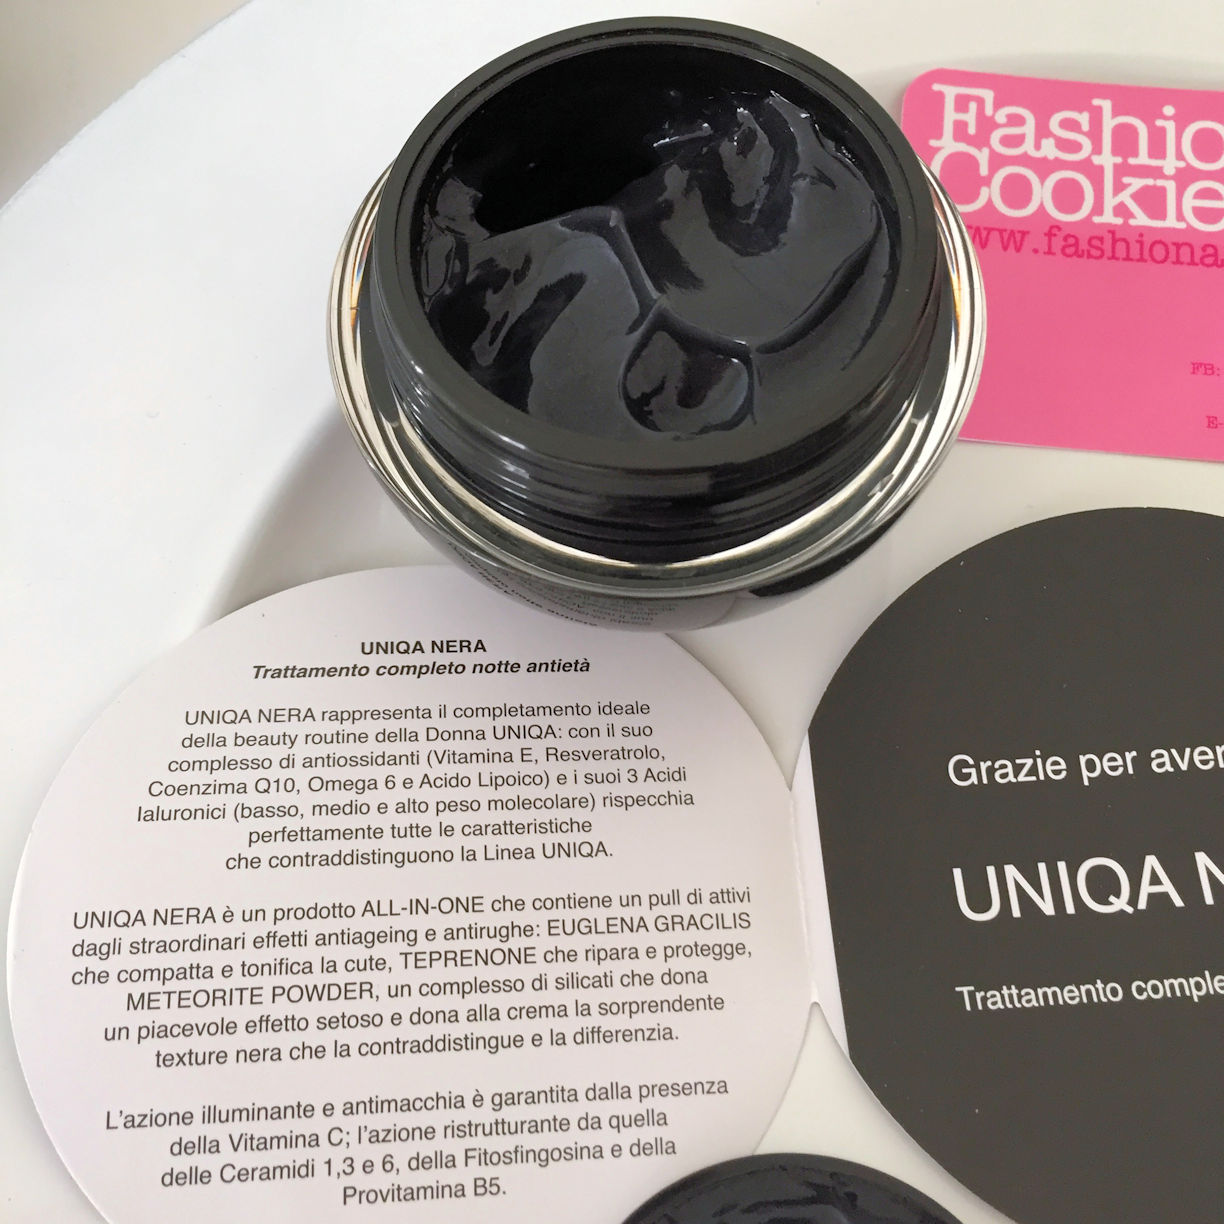 Uniqa Nera by Pea Cosmetics review black anti-age night-time cream on Fashion and Cookies beauty blog, beauty blogger